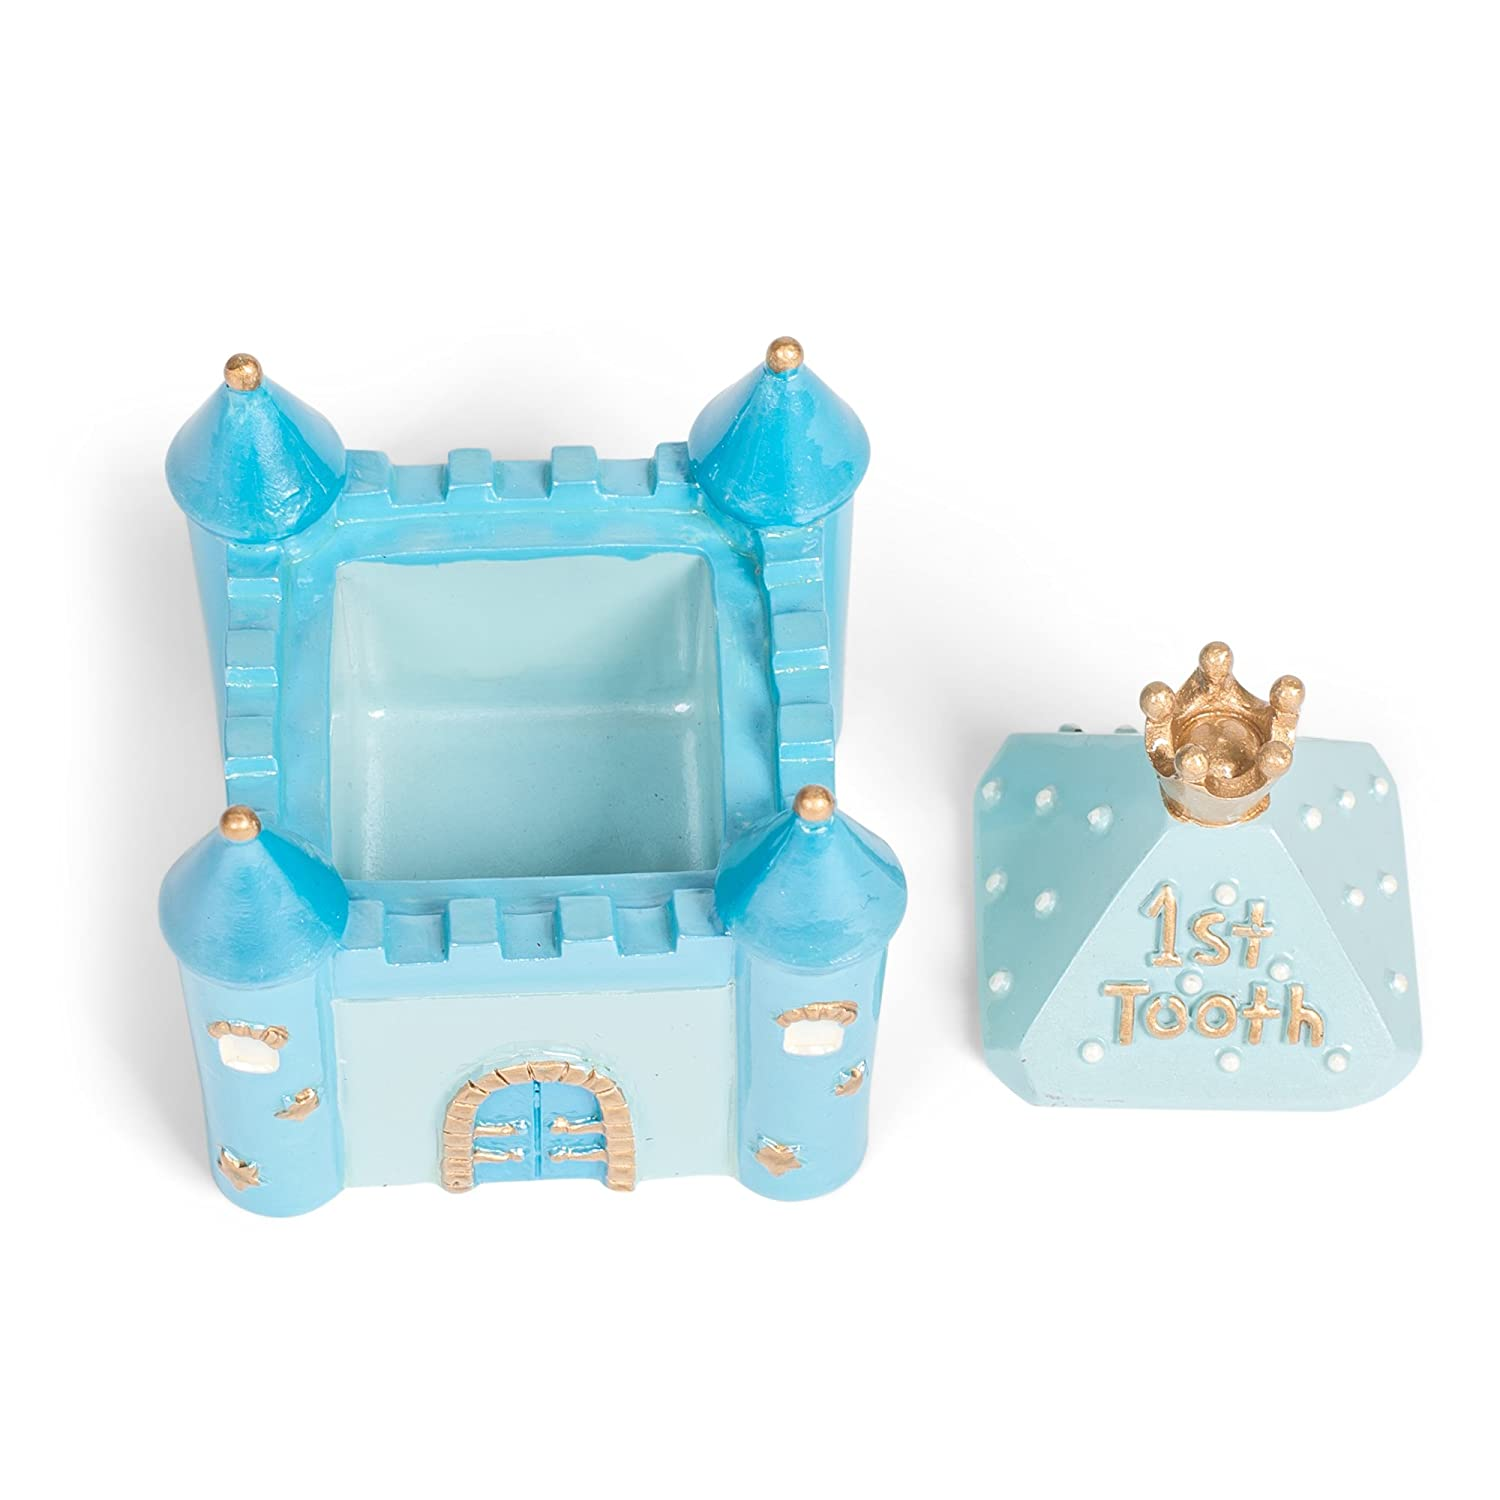 Blue Castle First Tooth and Curl 2 x 2.5 Inch Handpainted Resin Keepsake Box 2 Piece Set